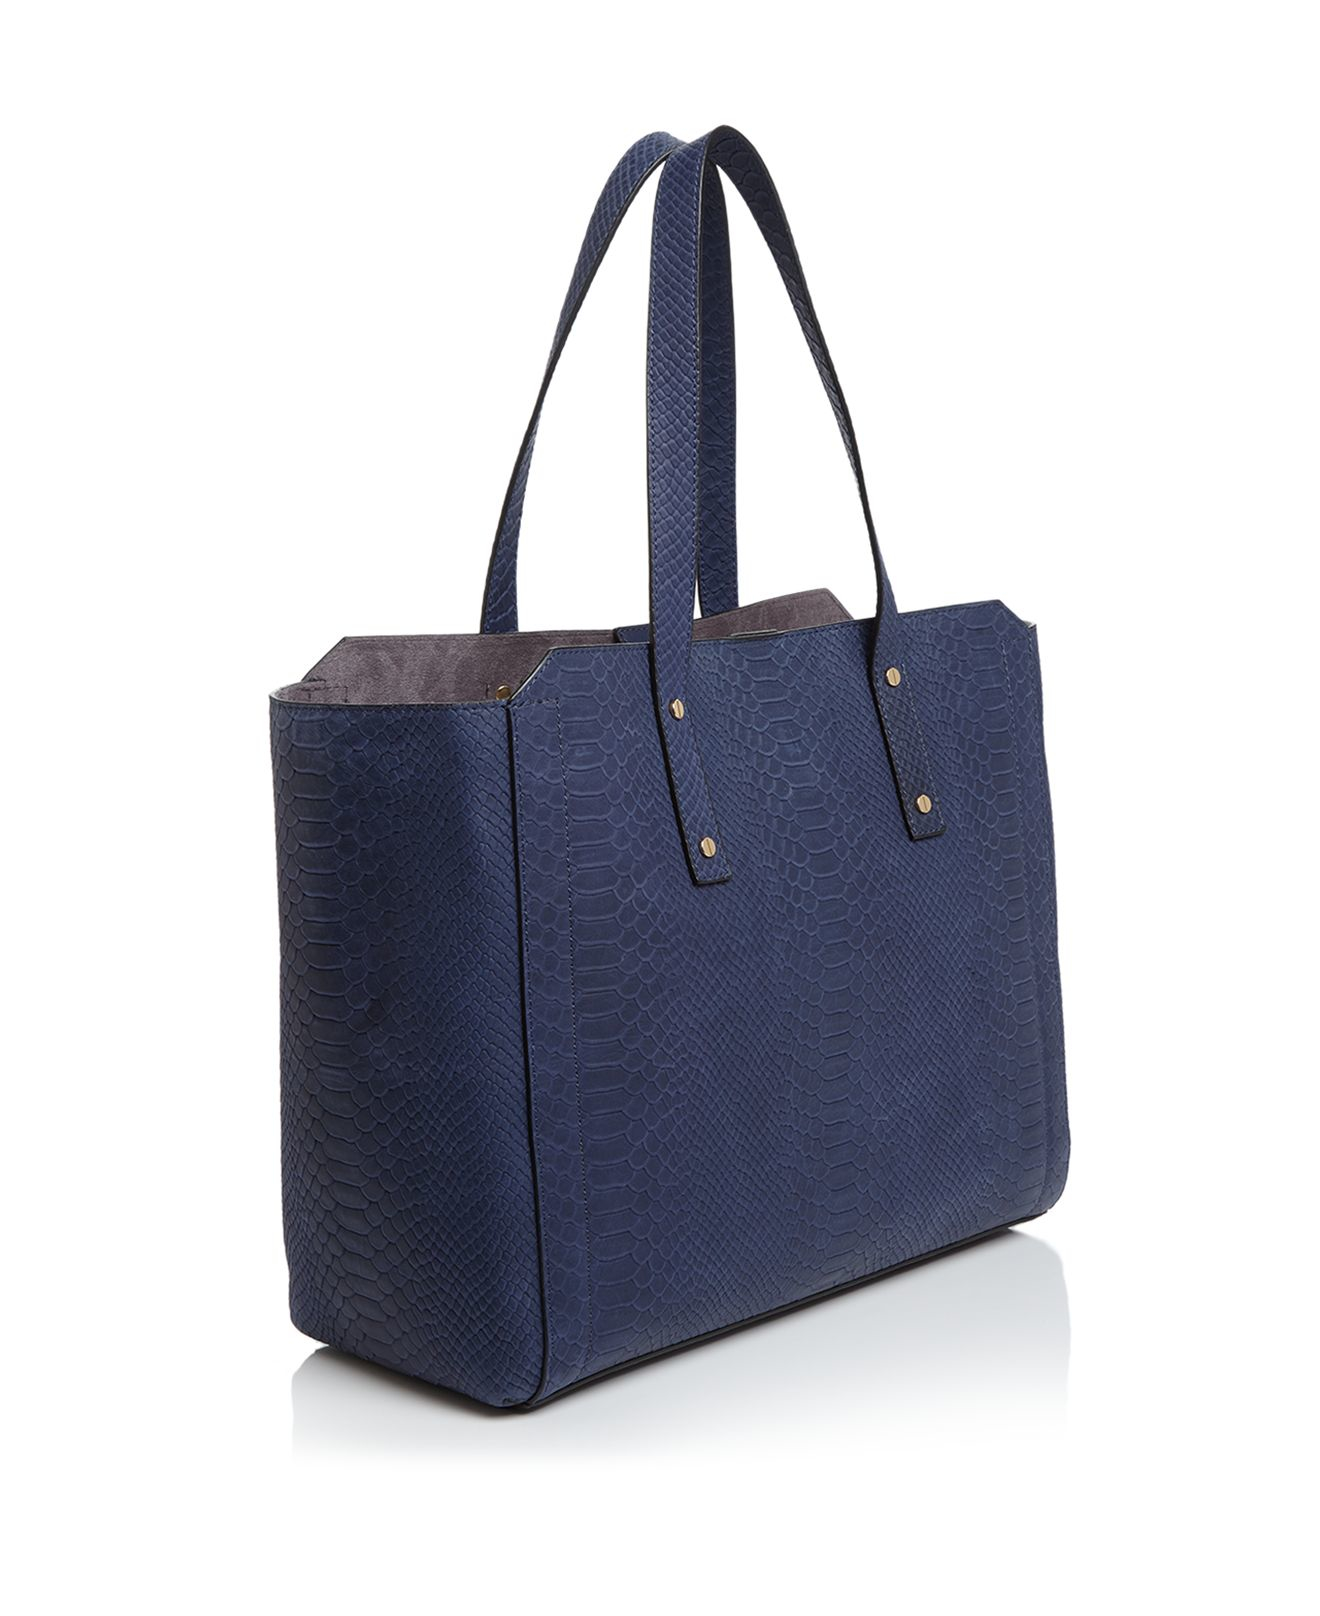 Ivanka Trump Leather Soho Work Solutions Battery-charging Pack Tote in Purple